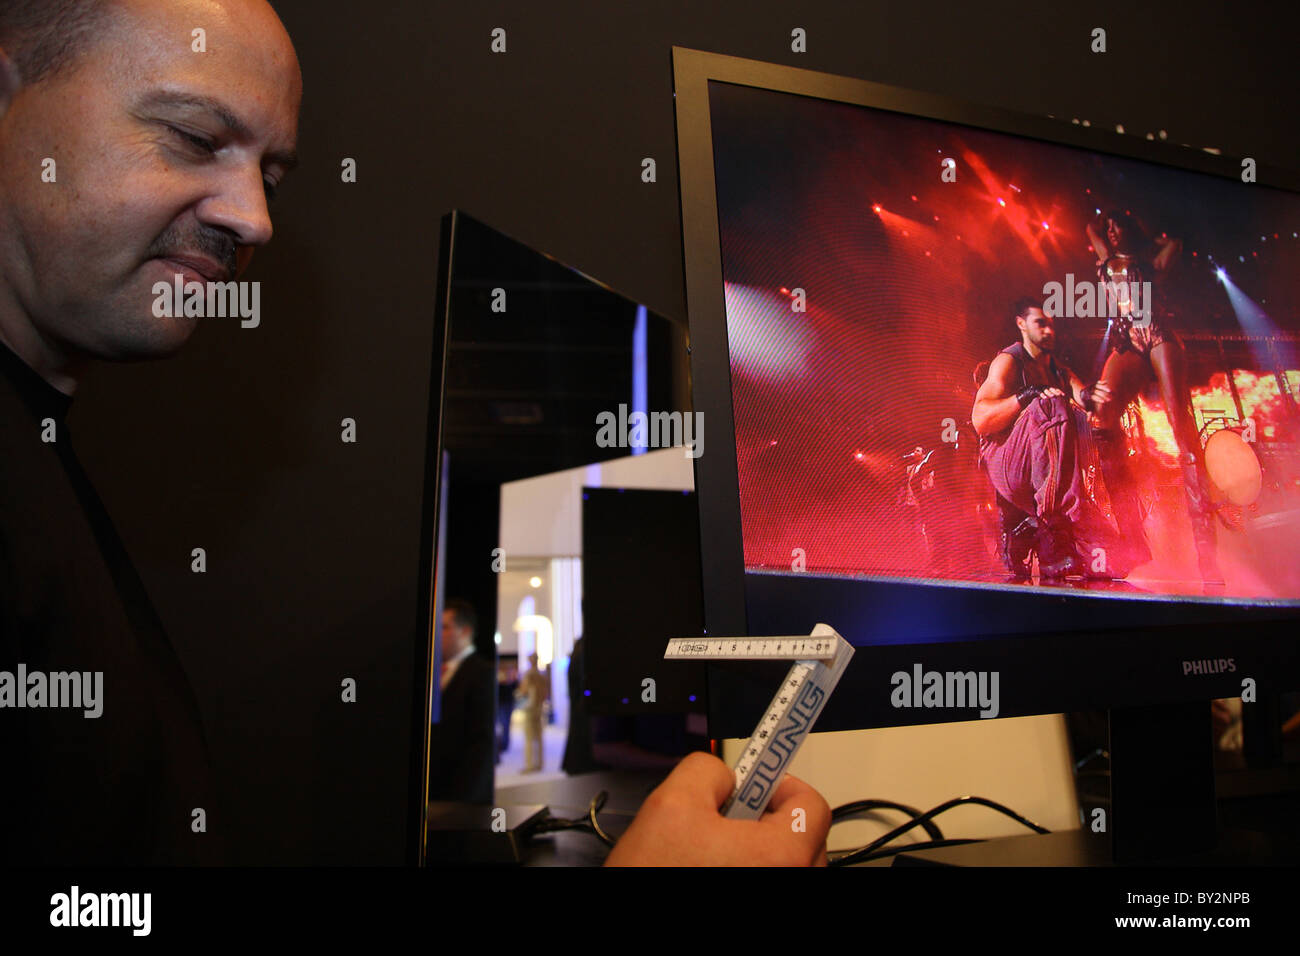 IFA 2008, a man measuring the width of an LCD screen, Berlin, Germany Stock Photo